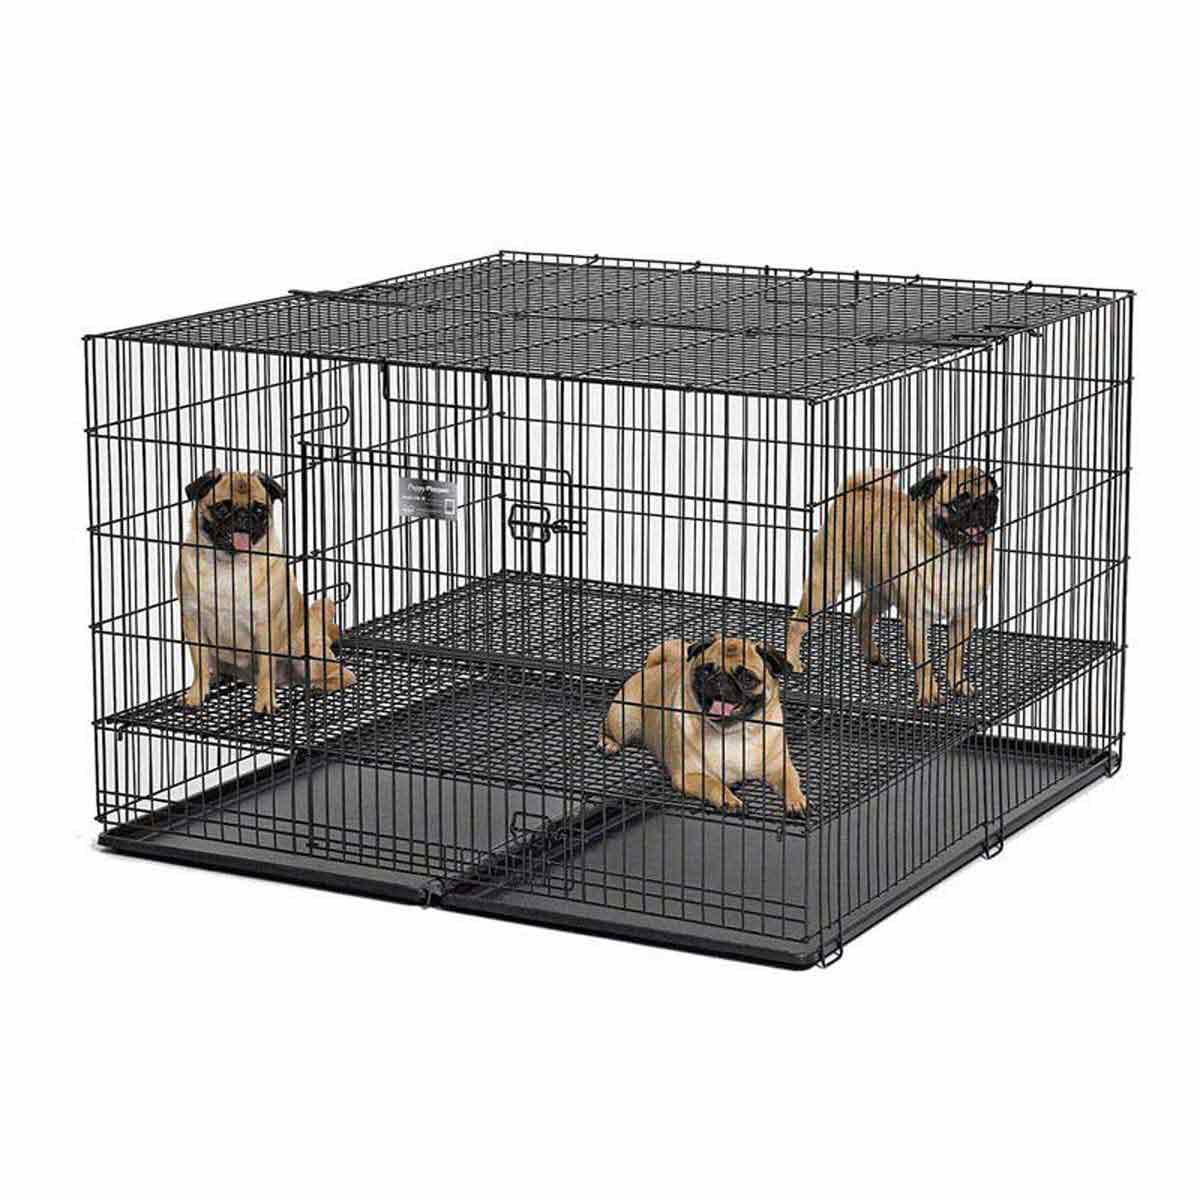 Midwest Puppy Playpen 36 inches by 36 inches by 30 inches